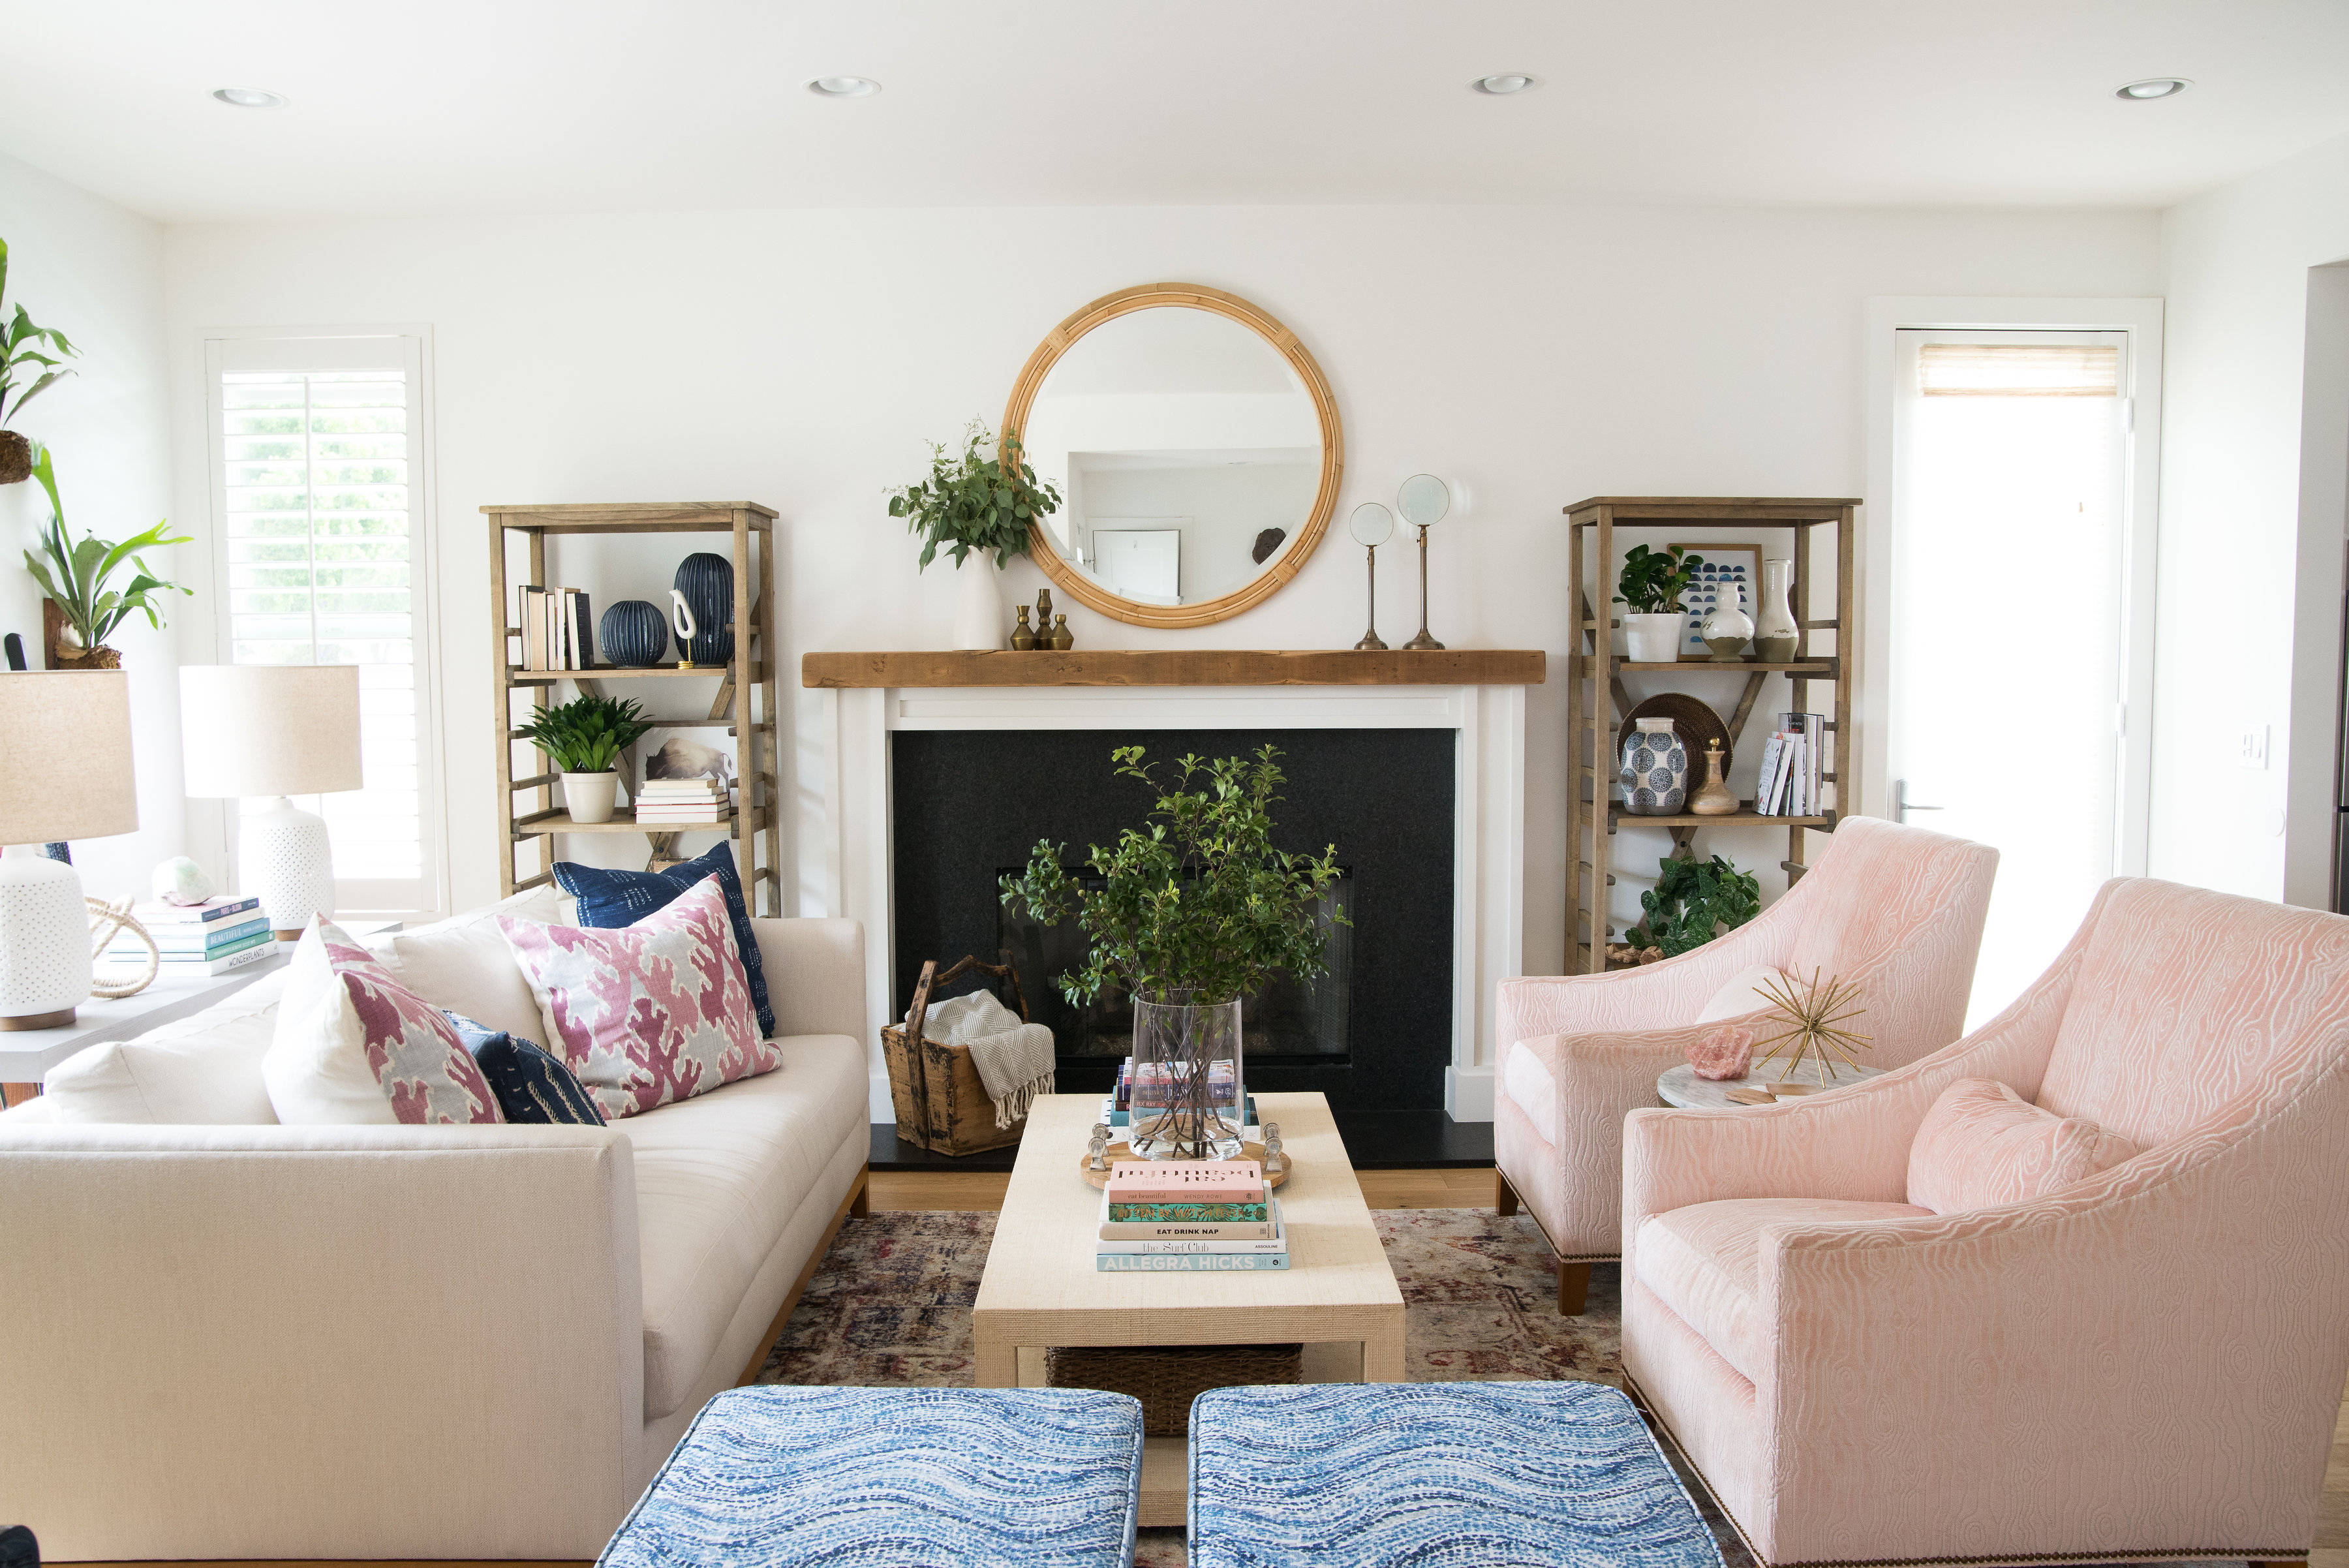 Home Design - Living Room